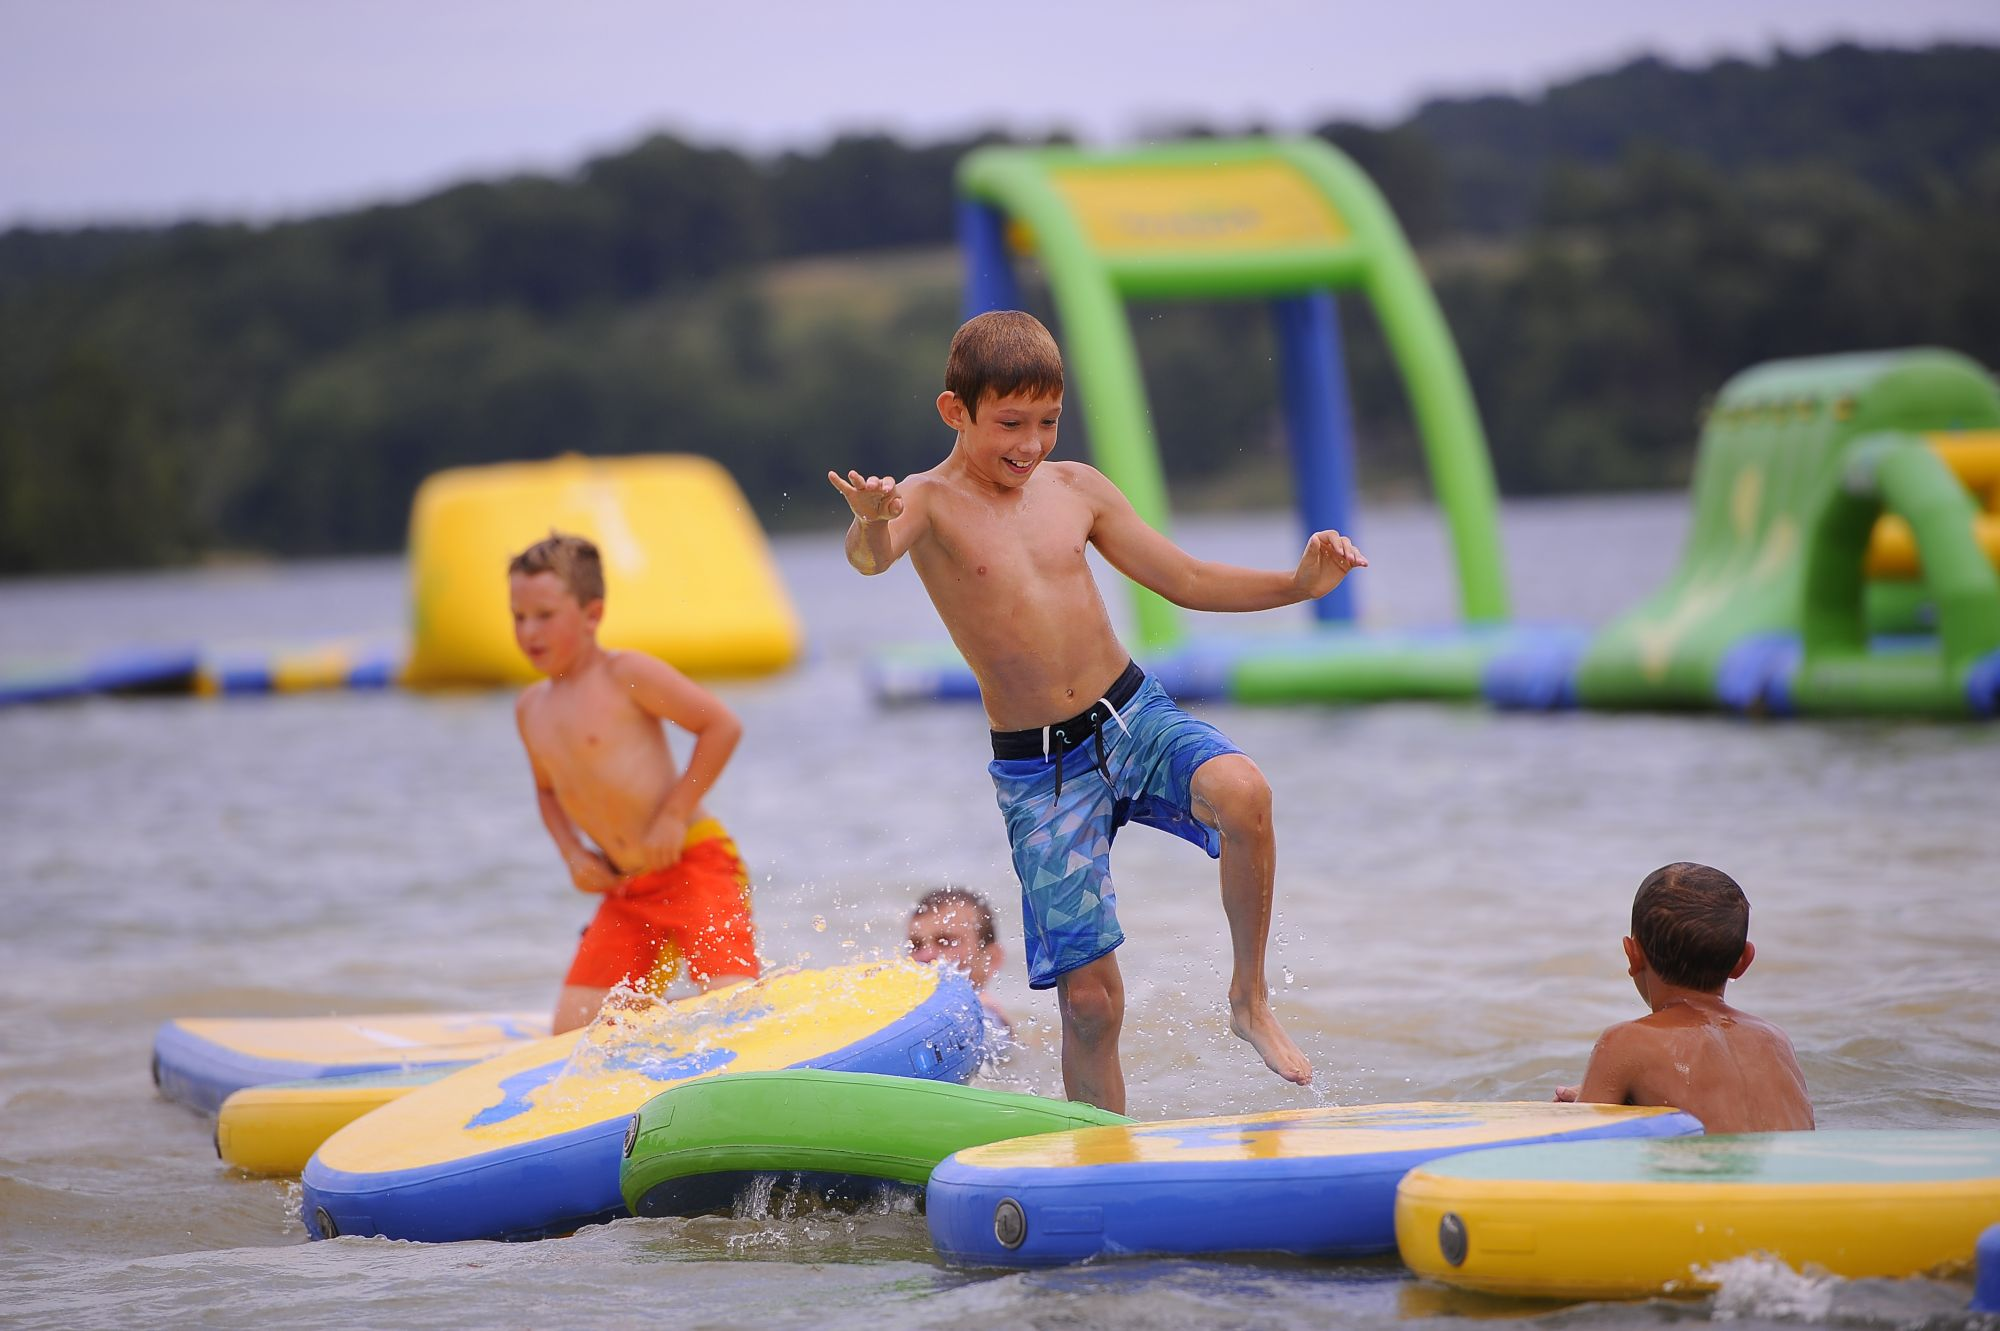 MWCD is seeking Request for Proposals to provide beach amenities at Atwood and Pleasant Hill Lake Park